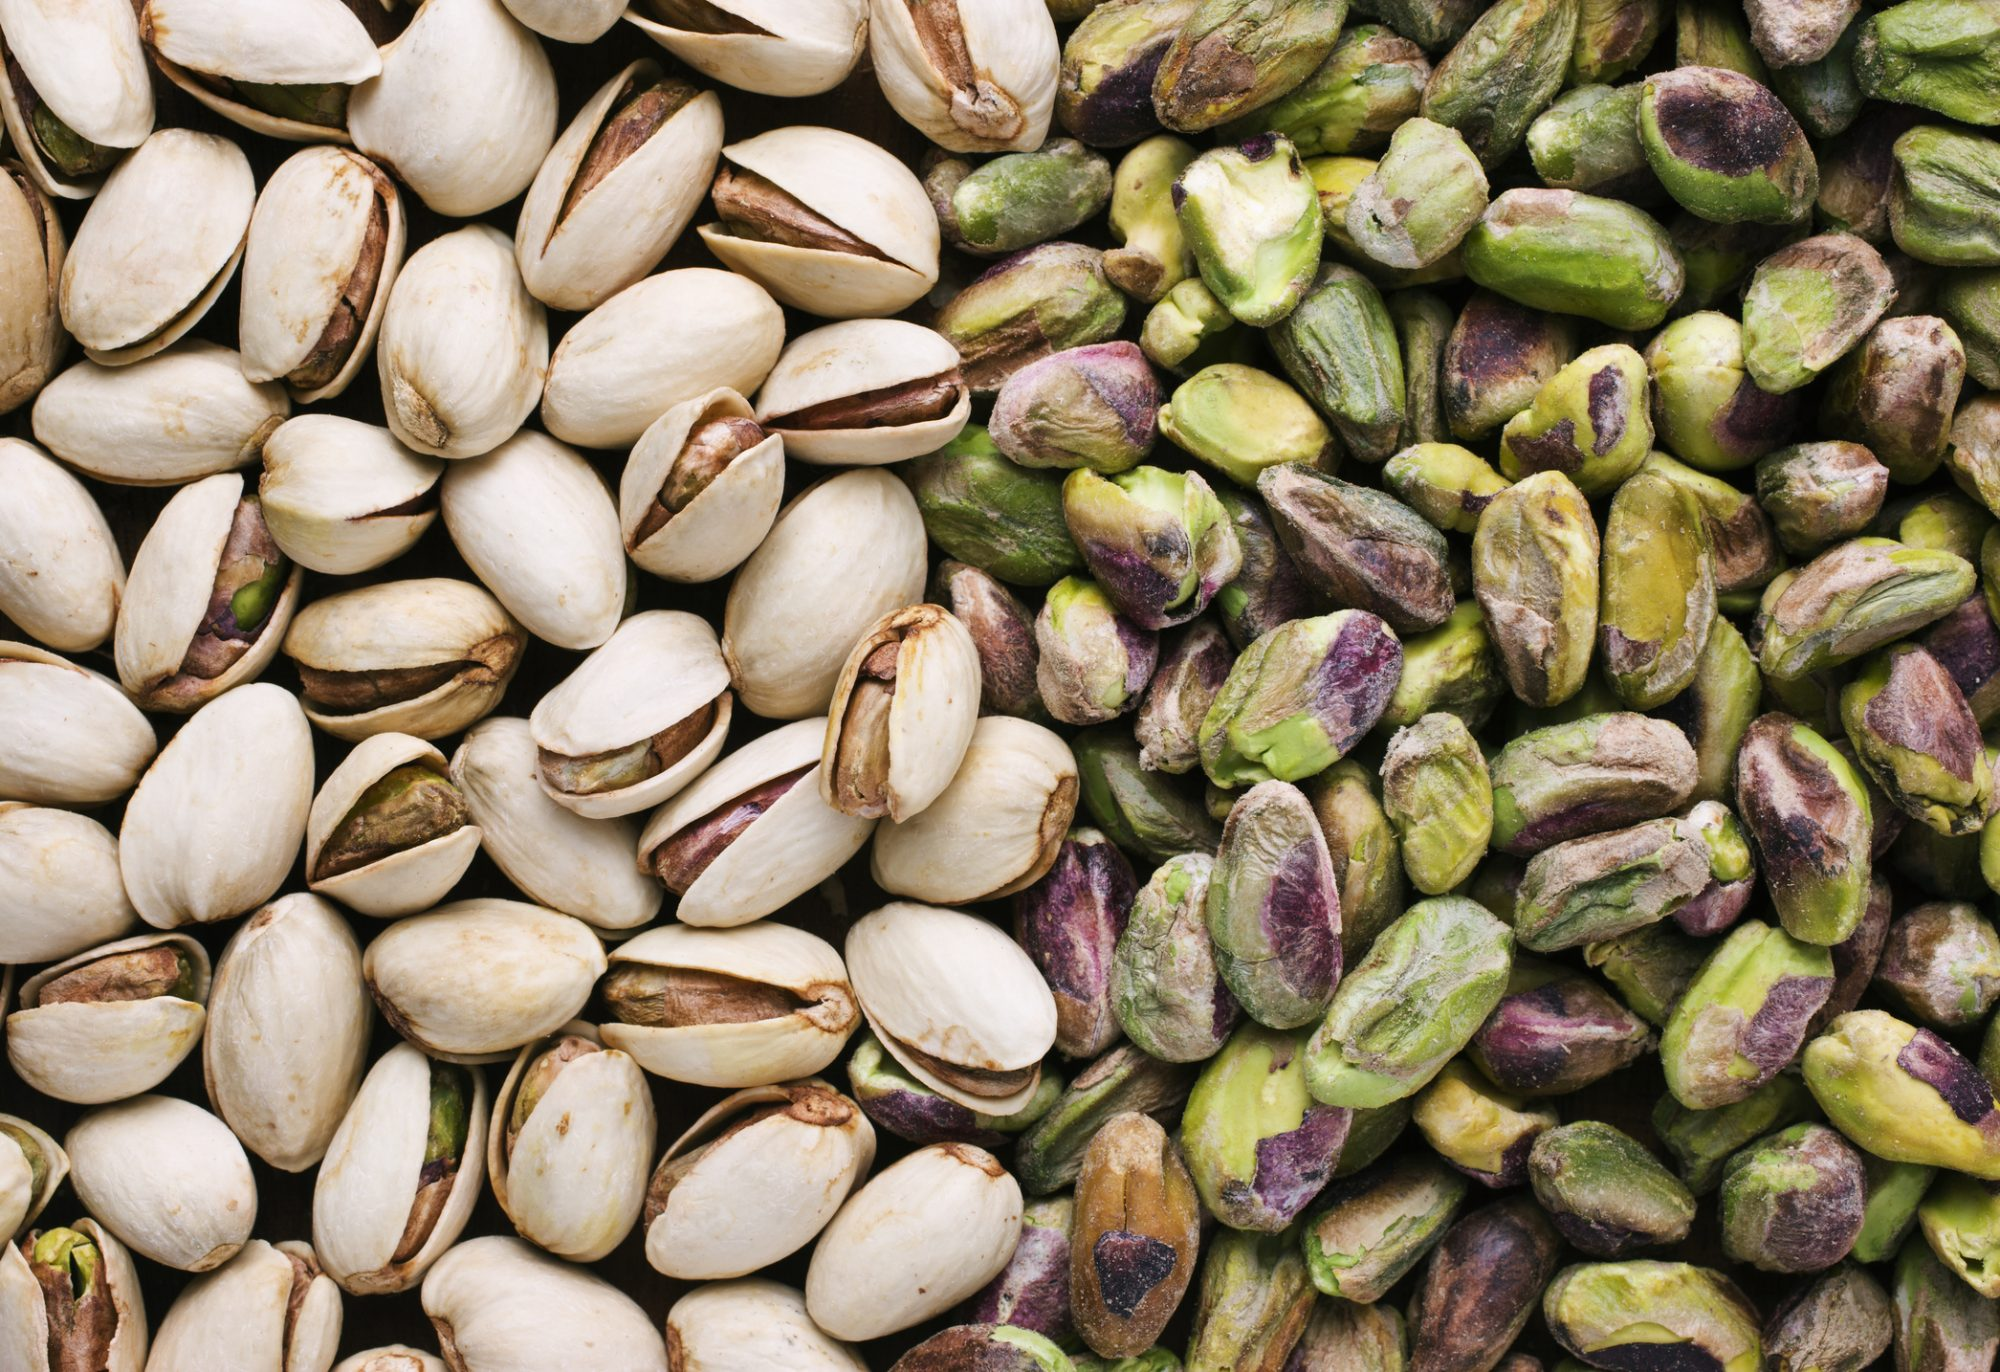 Pistachios both shelled and unshelled